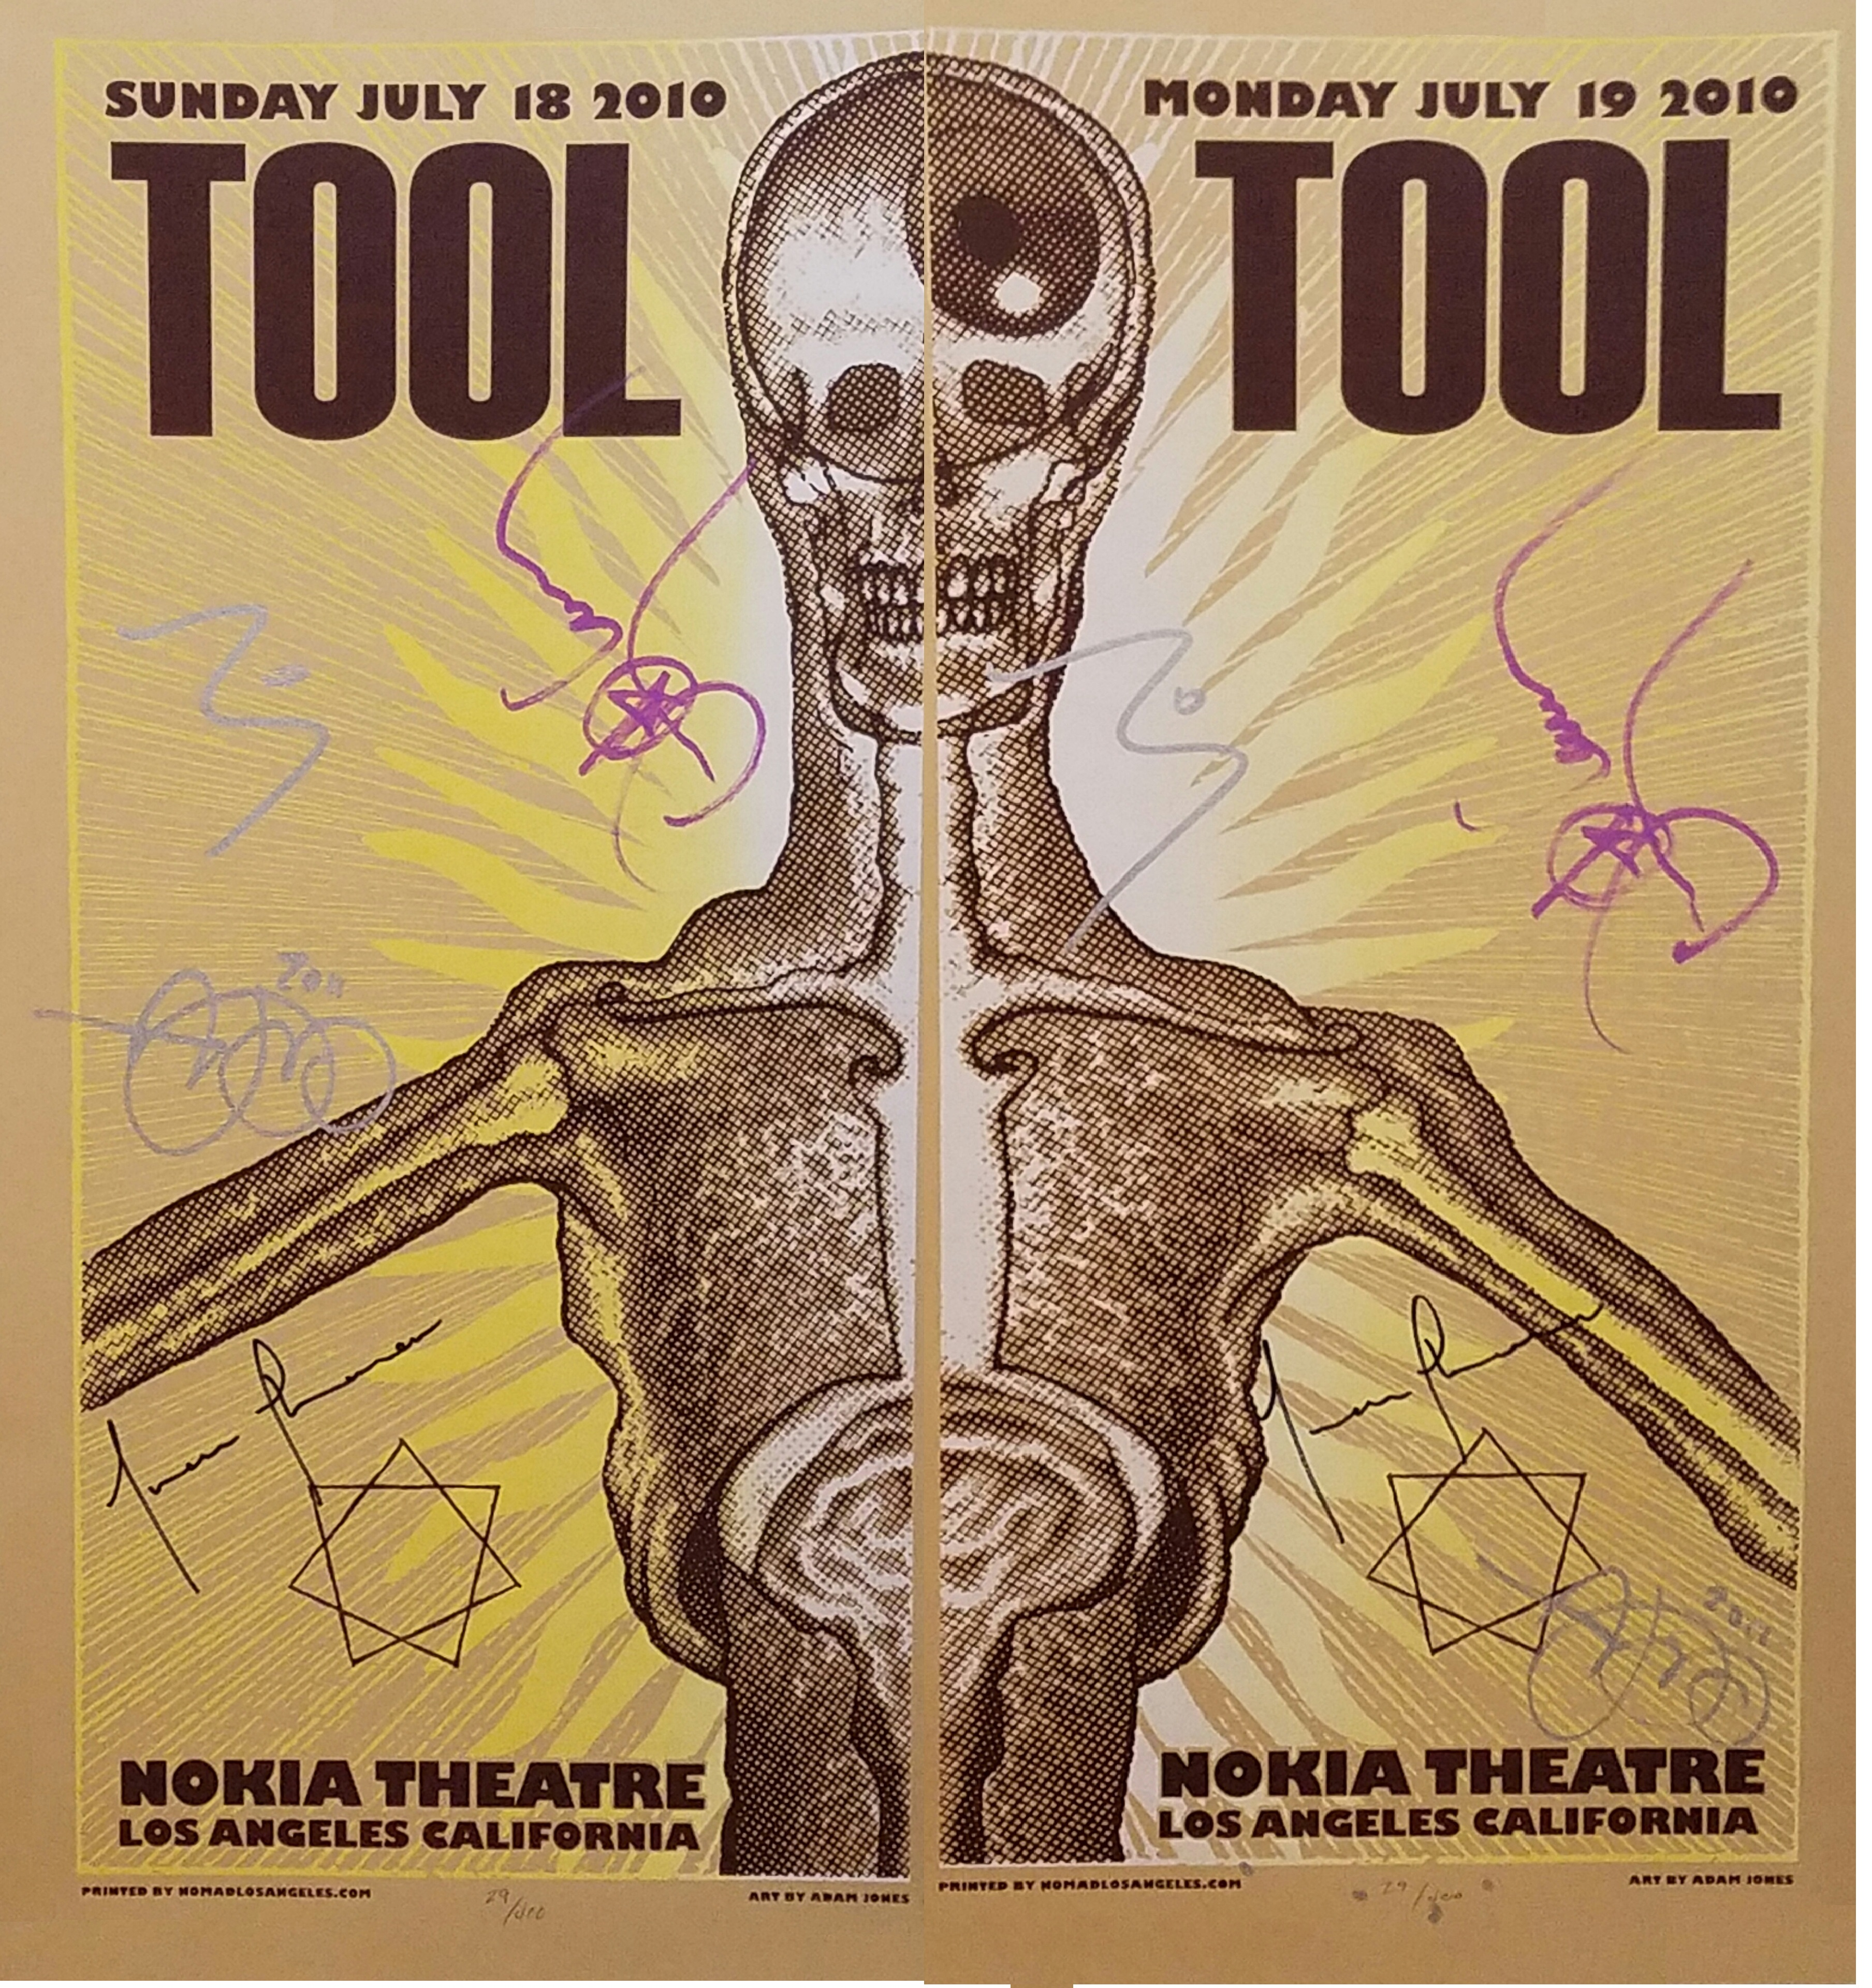 SIGNED OUT-OF-PRINT TOOL CONCERT POSTERS